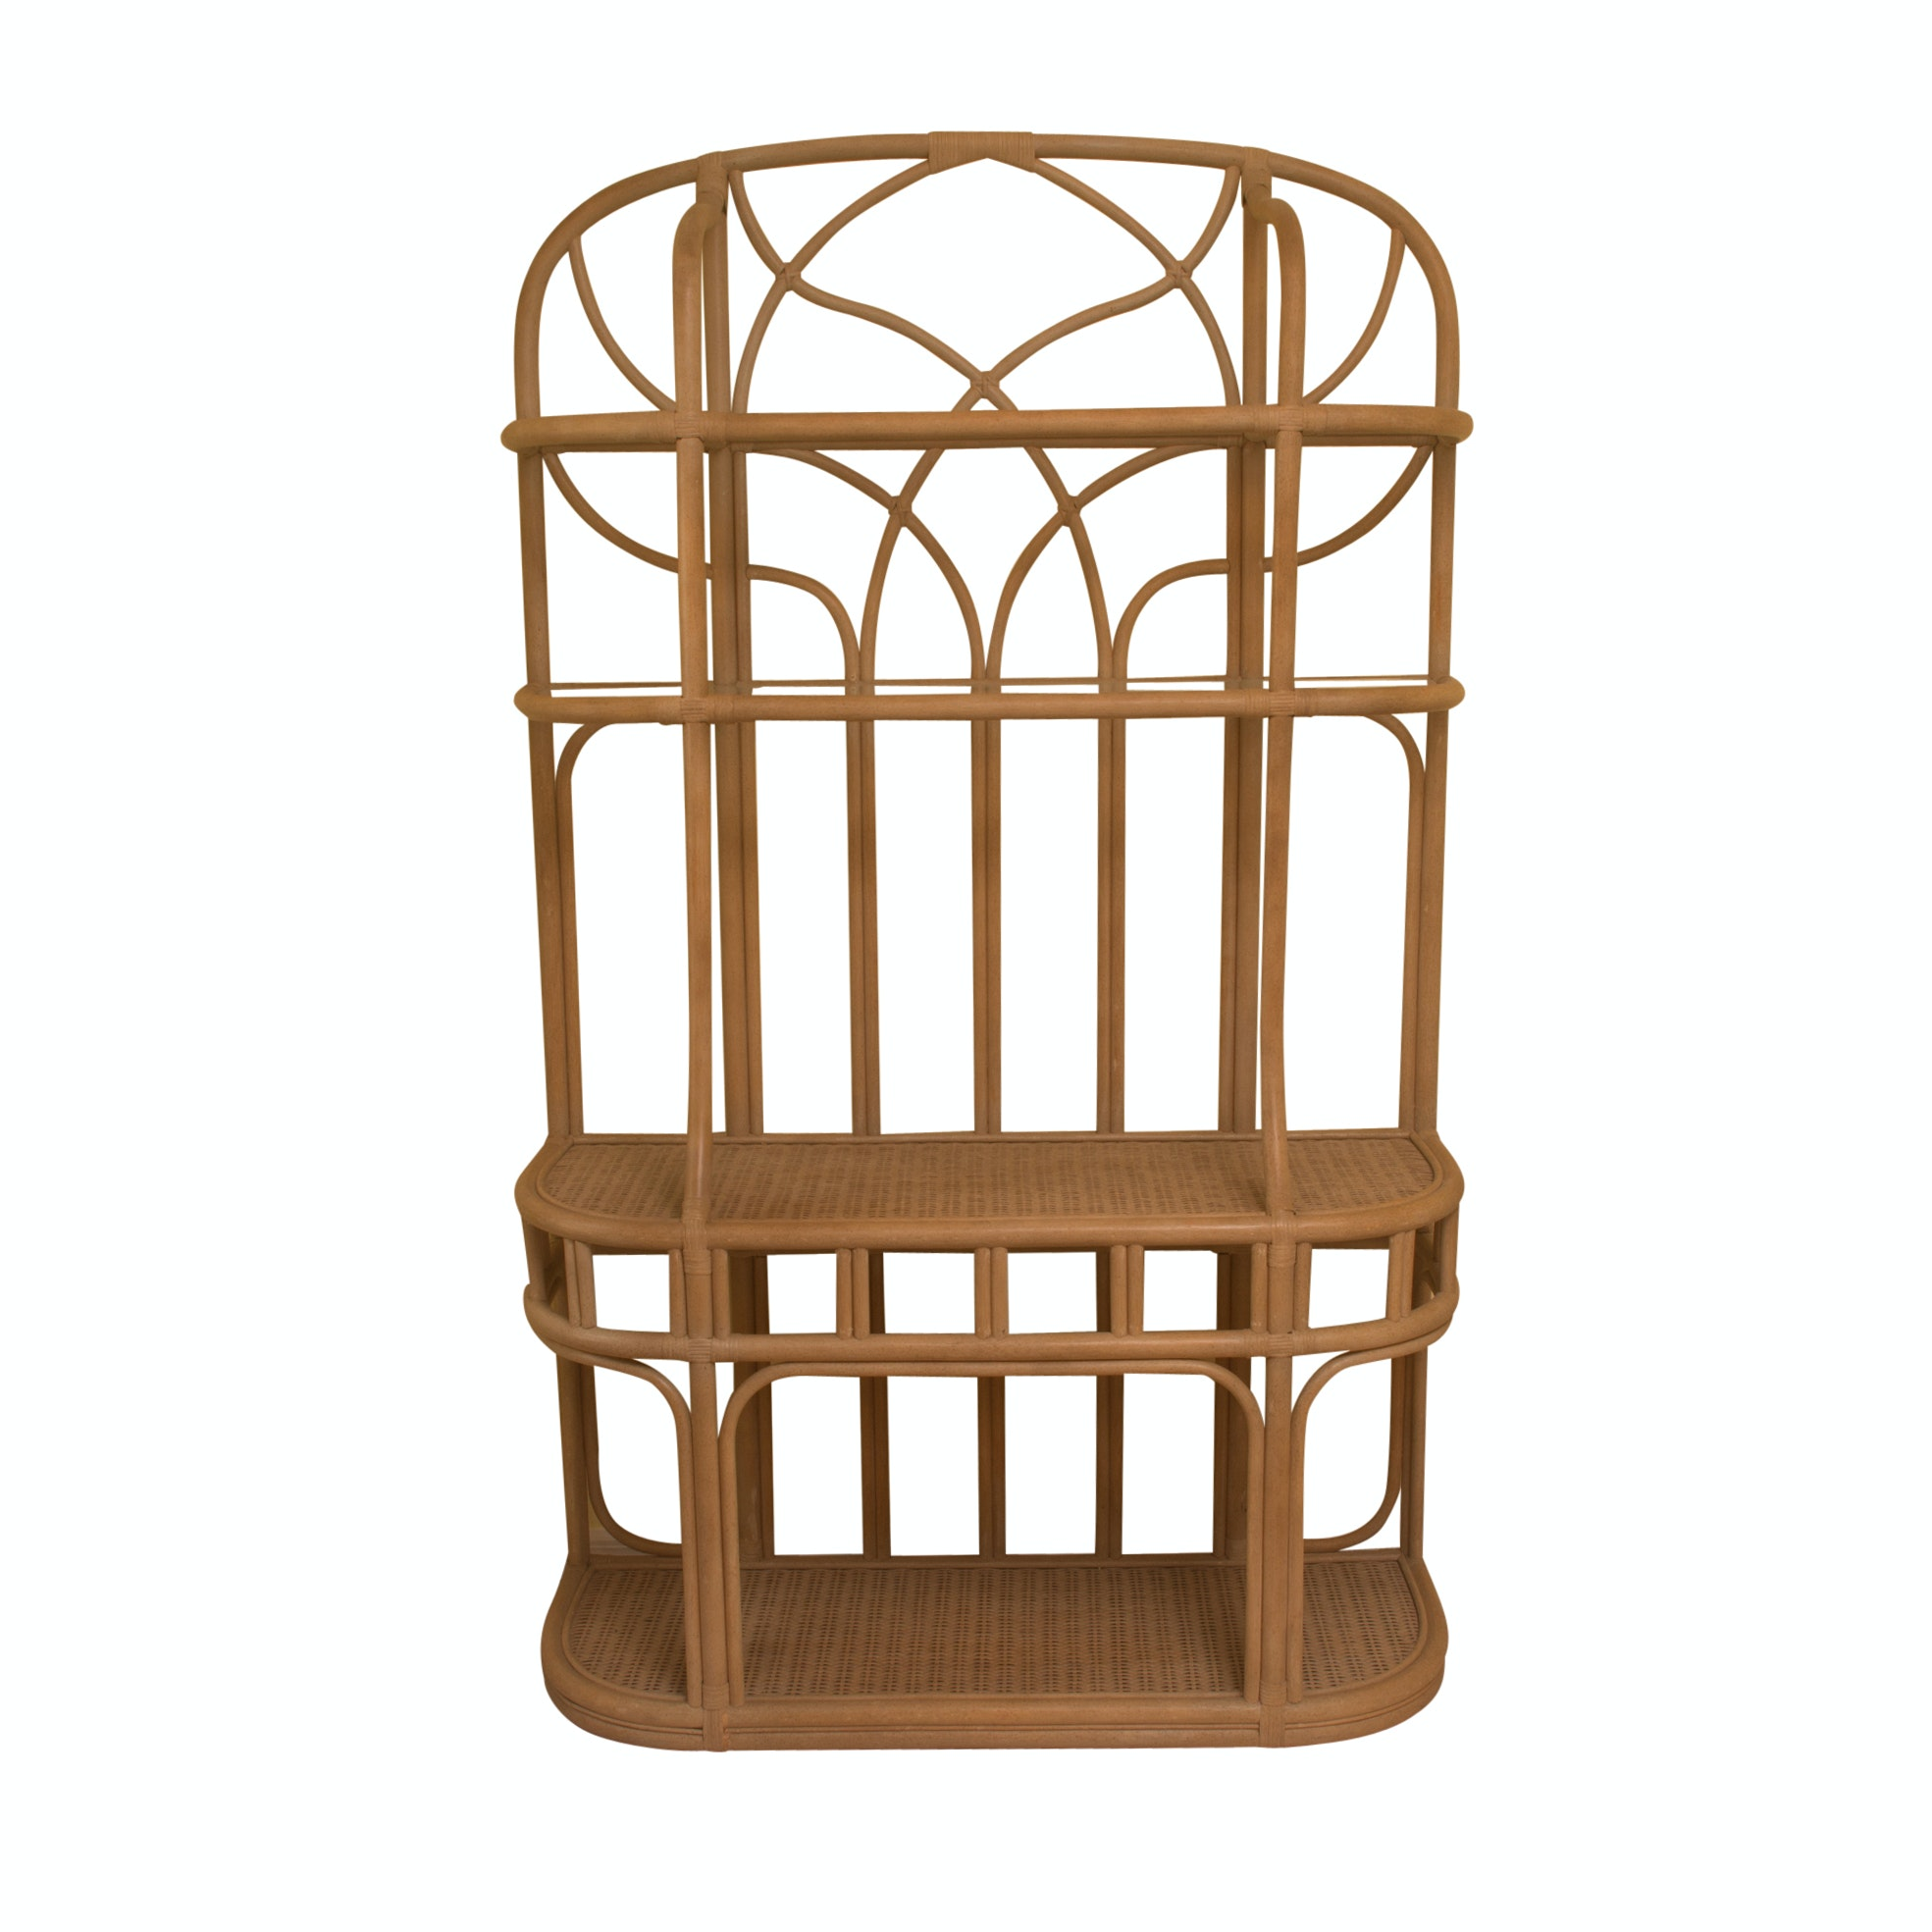 Rattan Étagère with Glass and Wicker Shelves